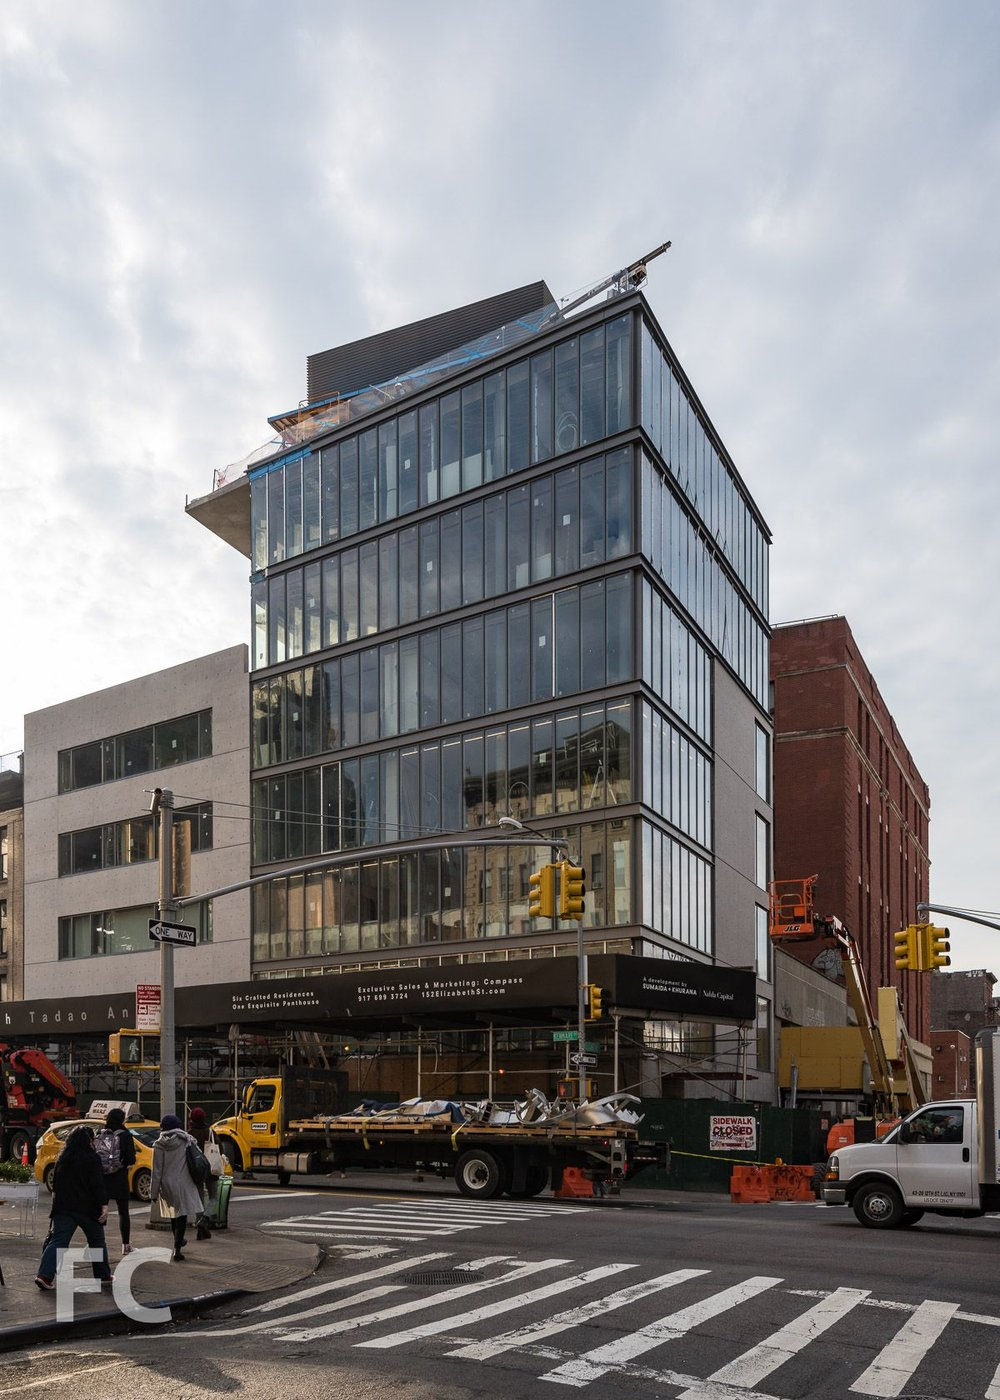 Construction Update: Tadao Ando's Luxurious 152 Elizabeth Street Reveals Its façade As Scaffolding Comes Down